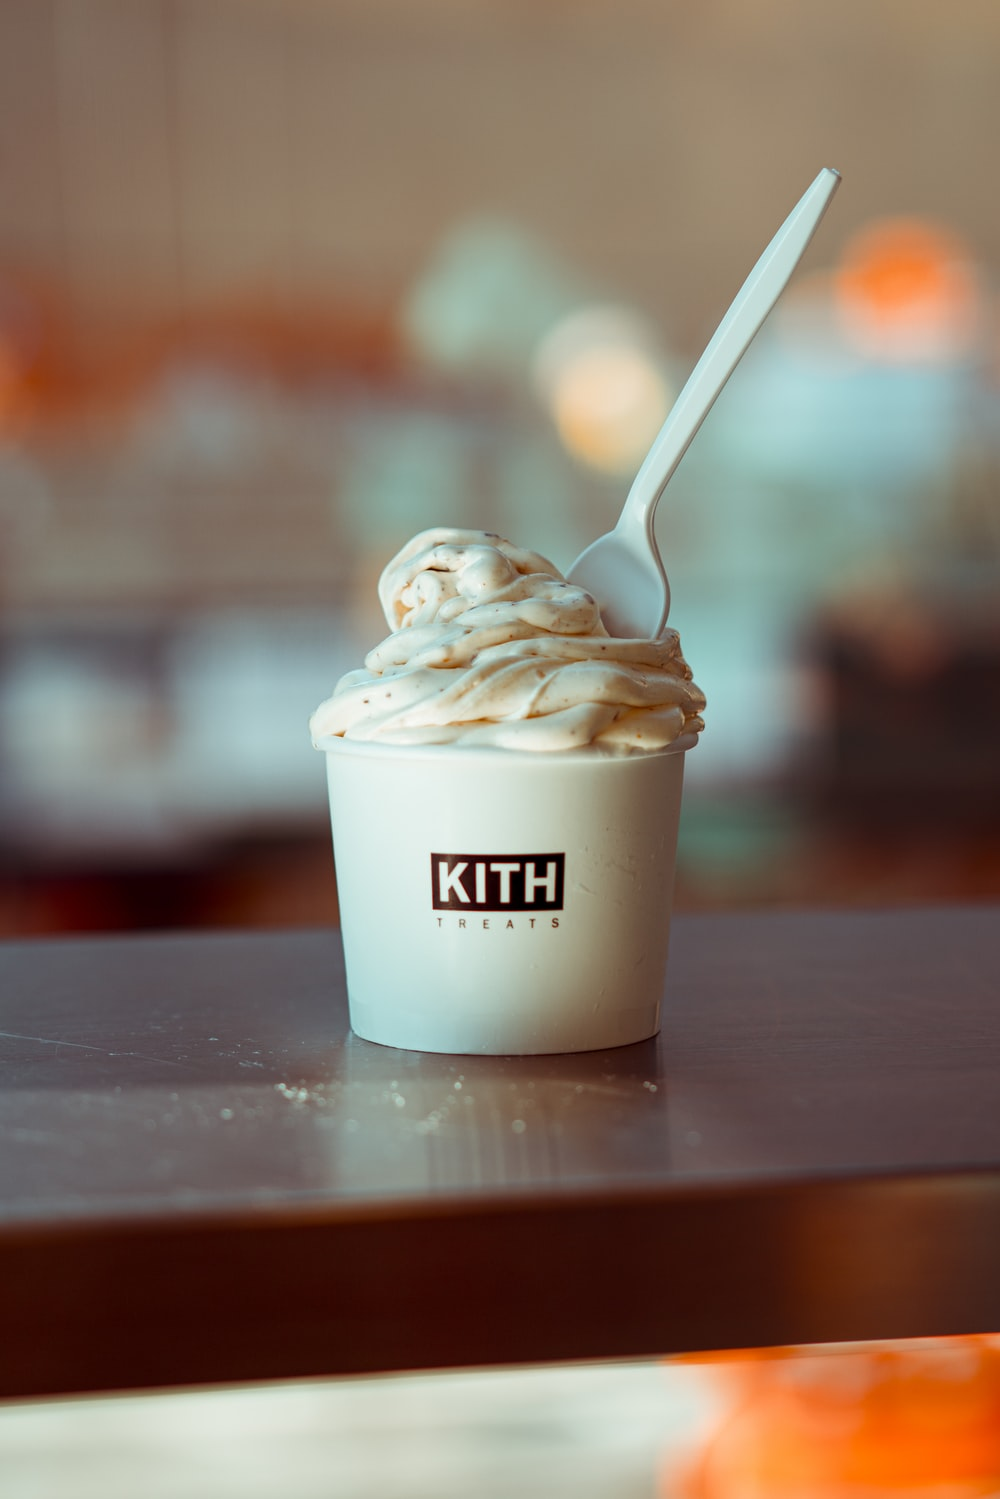 soft ice cream in Kith cup